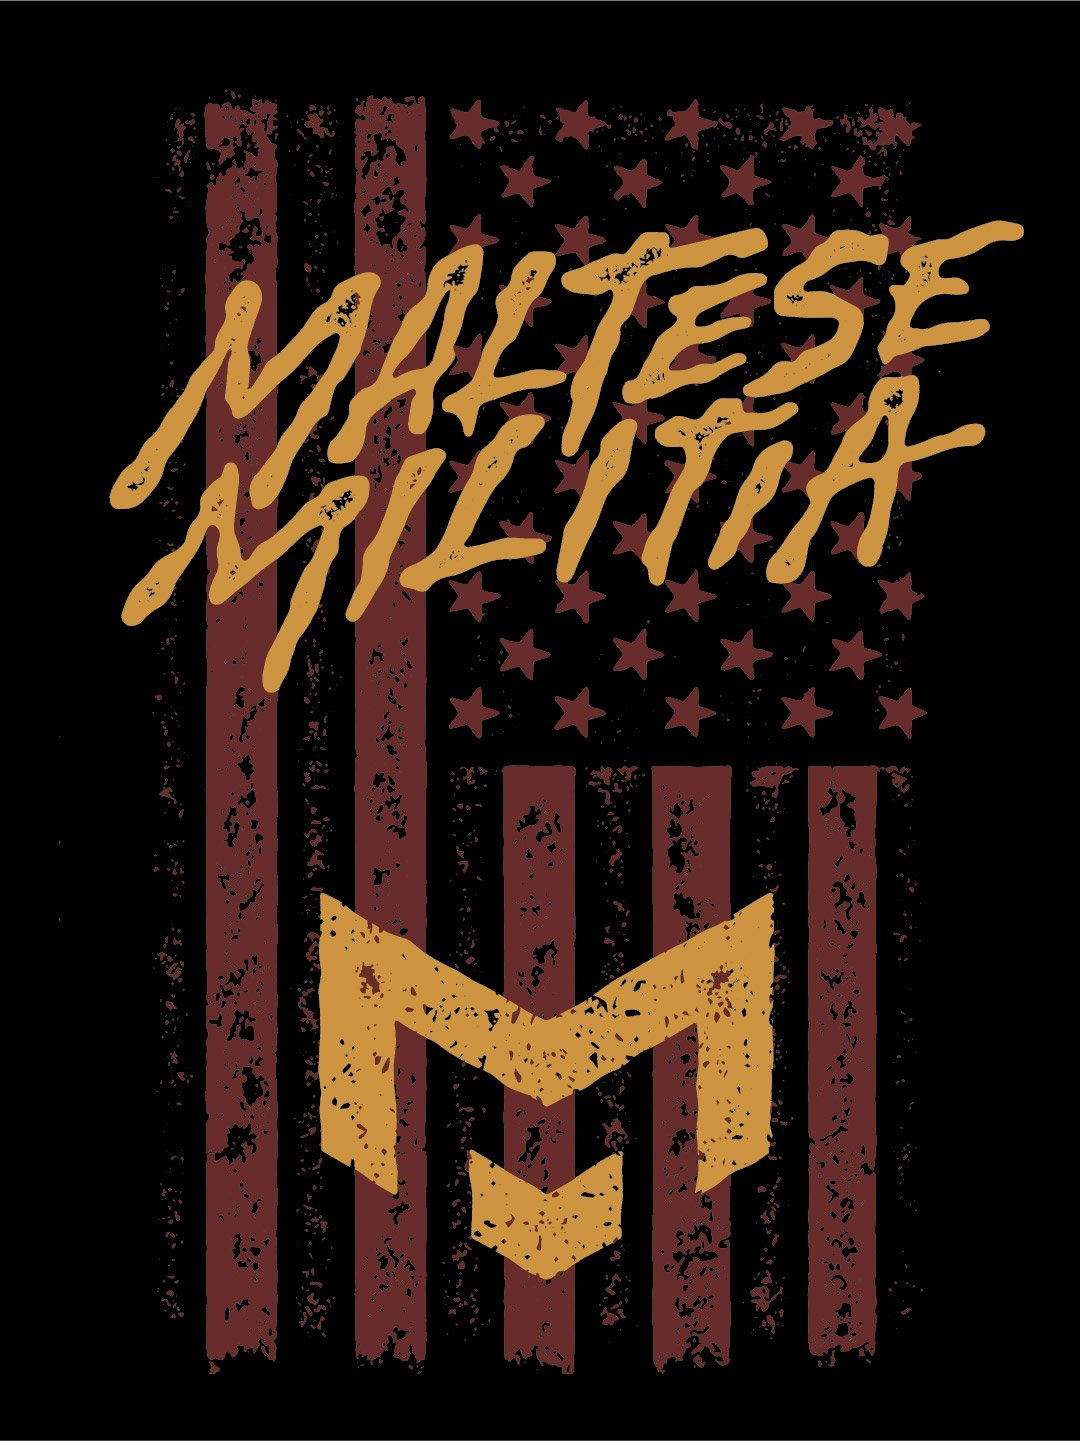 Maltese Militia shirt design by Jeff Finley